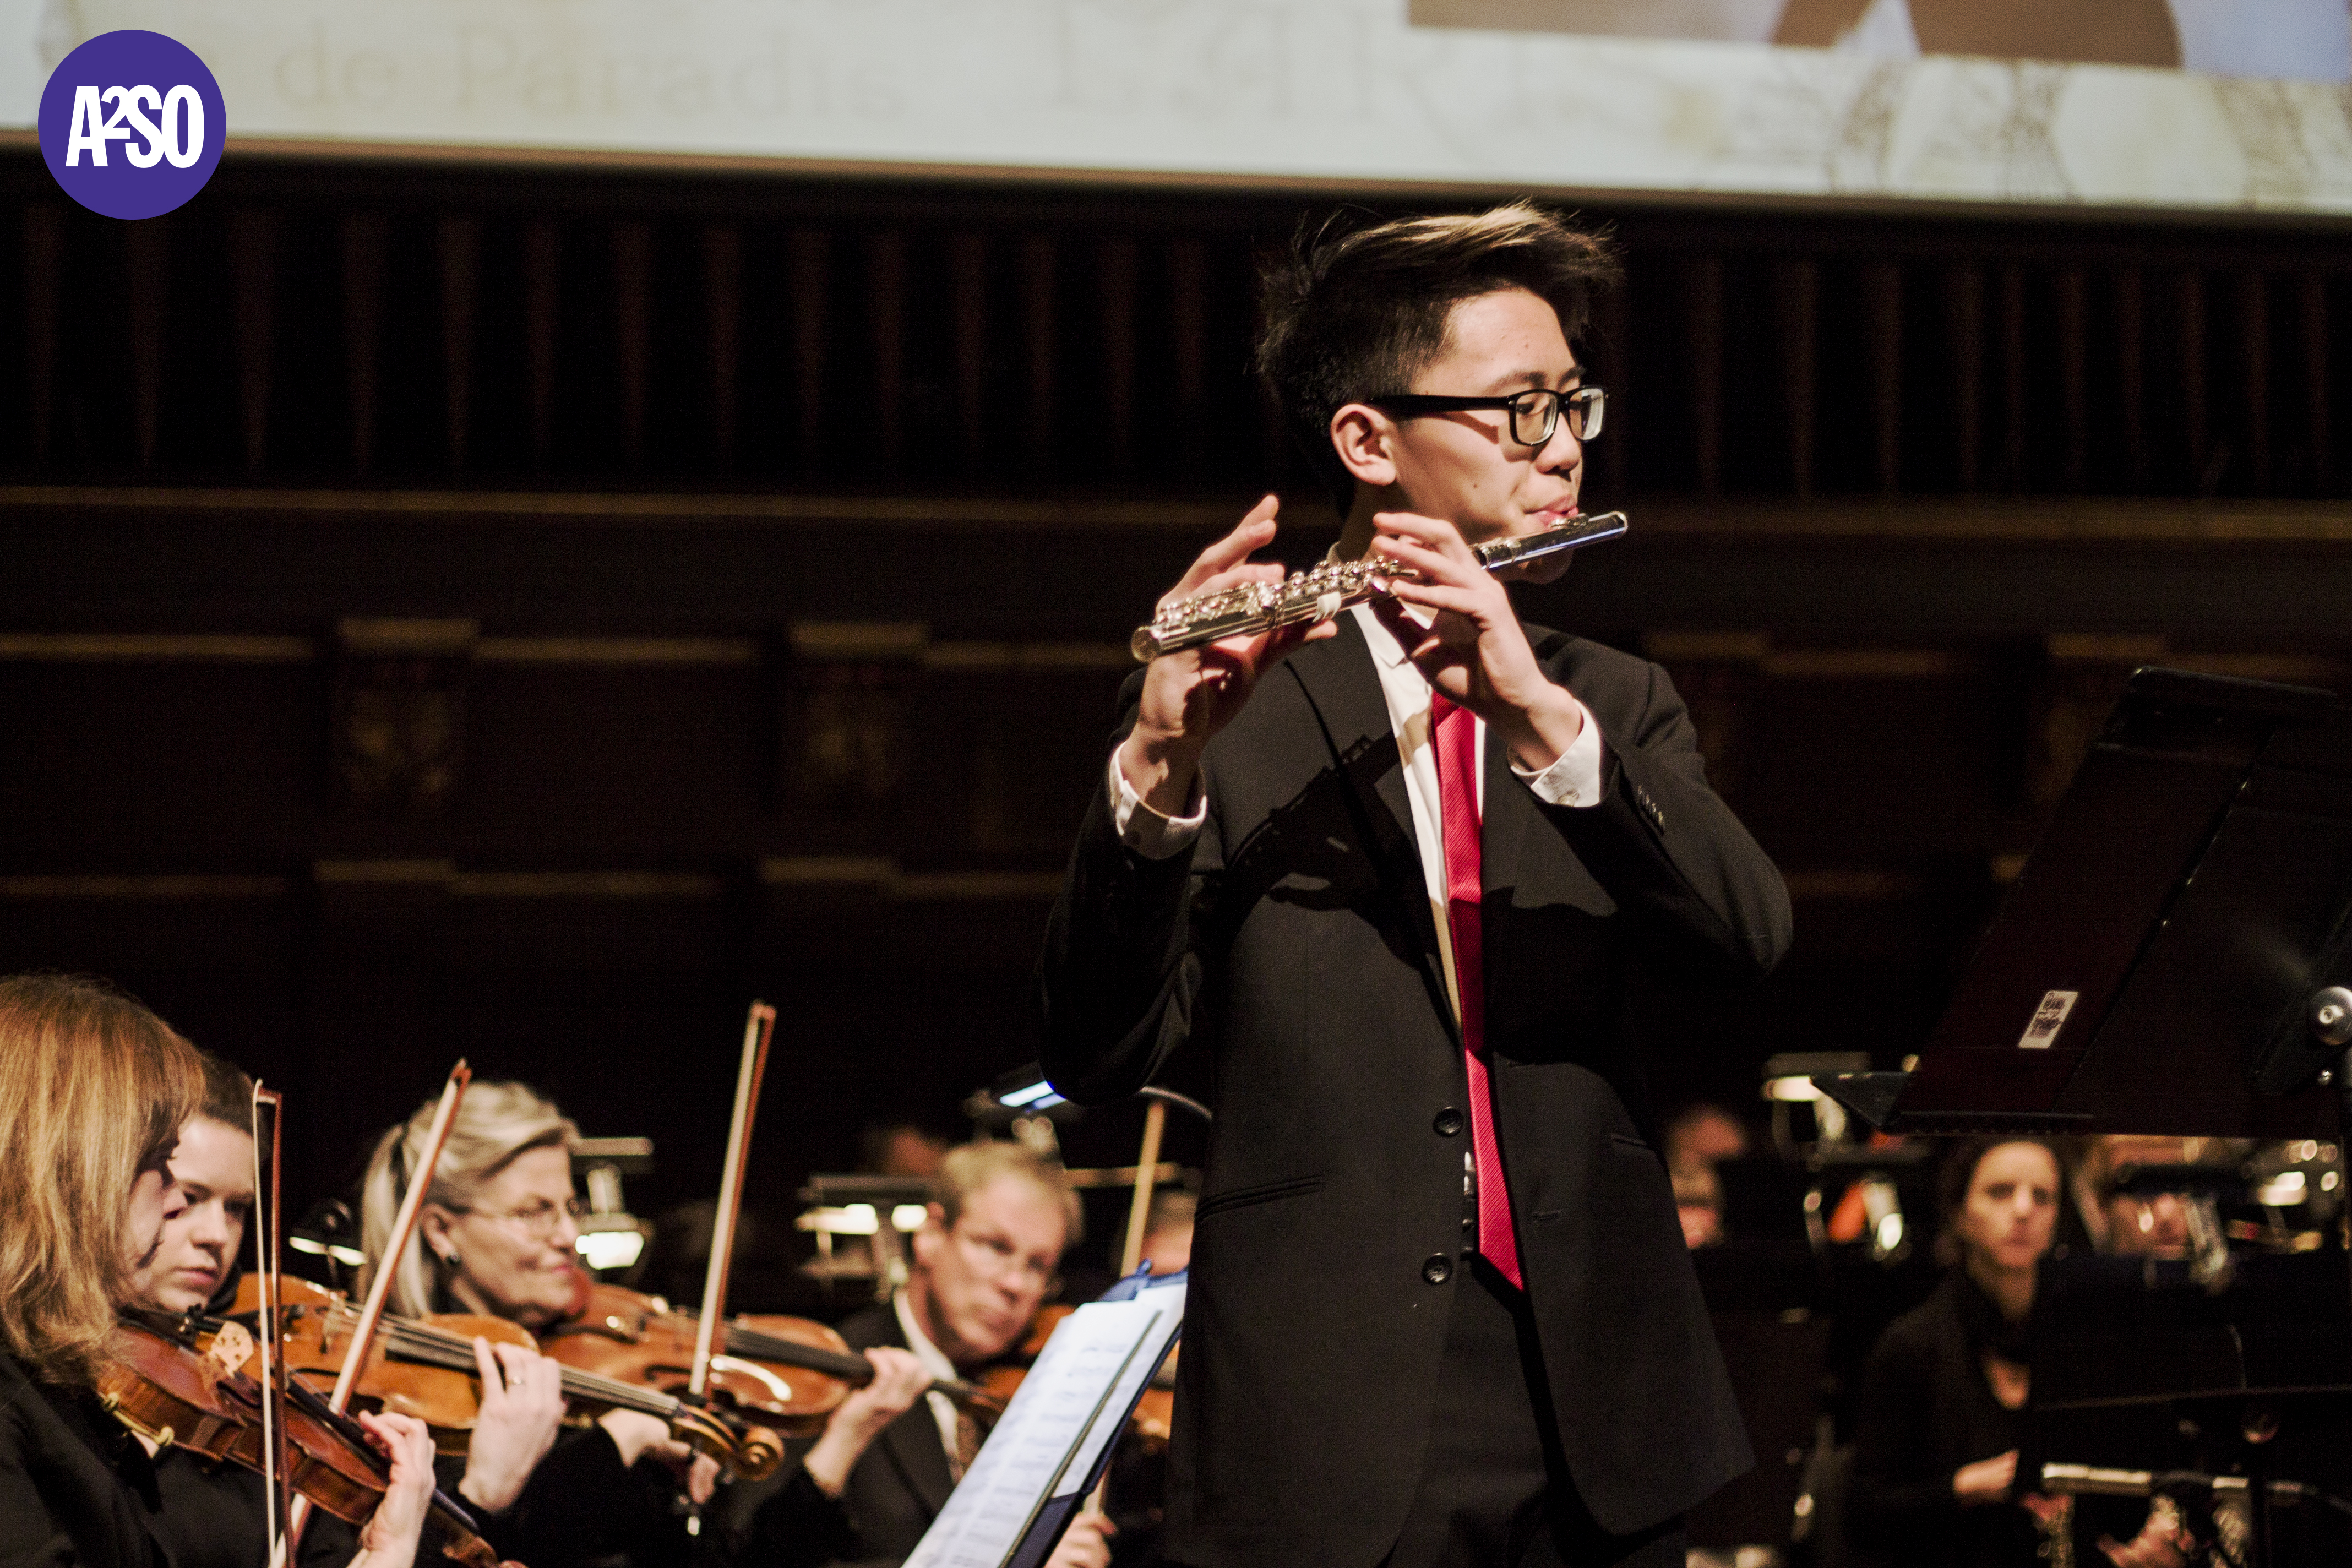 Young Artist Competition 2019 – Ann Arbor Symphony Orchestra